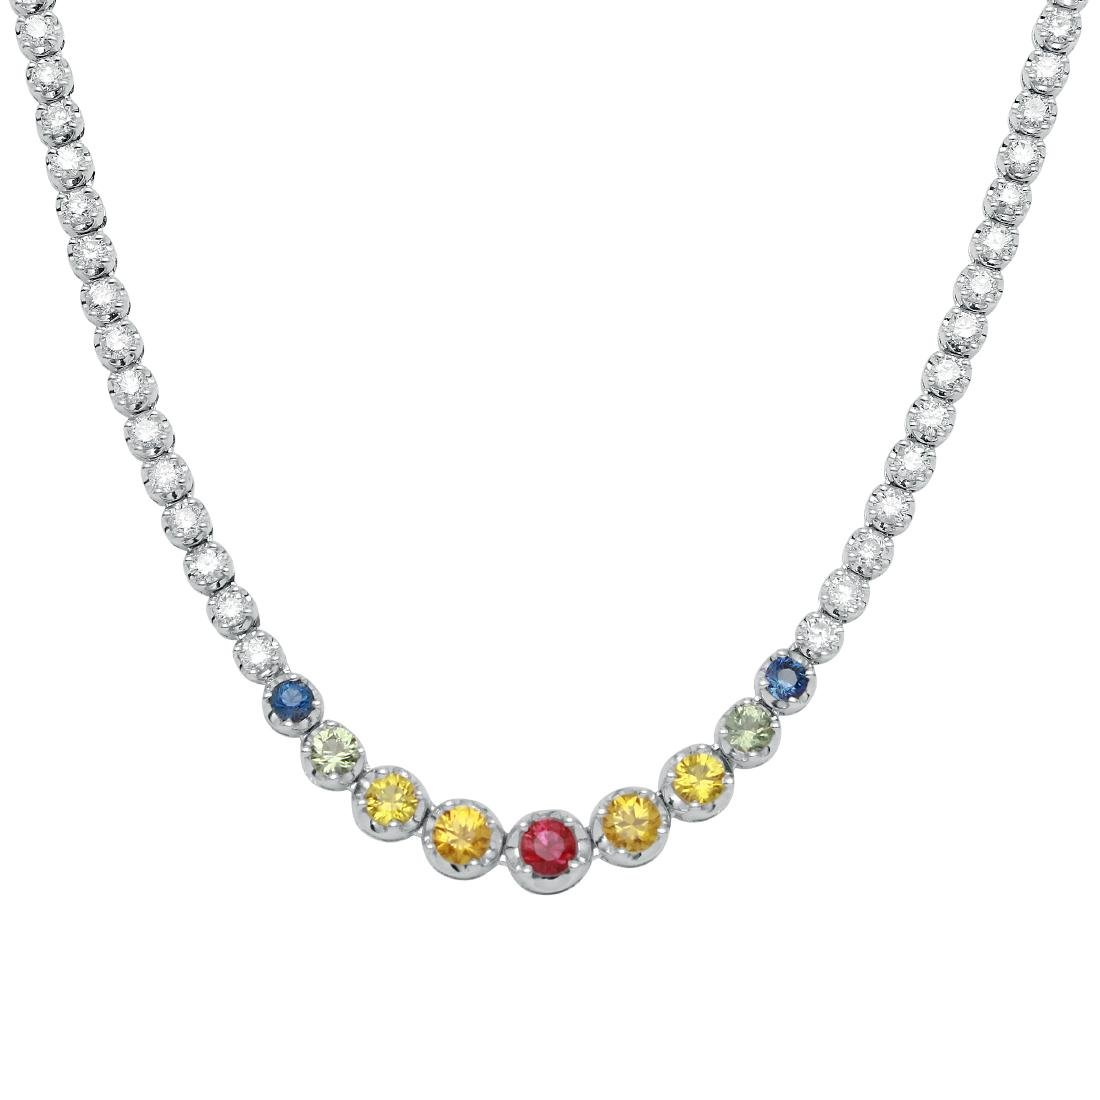 18KT White Gold Gemstone Necklace - 2